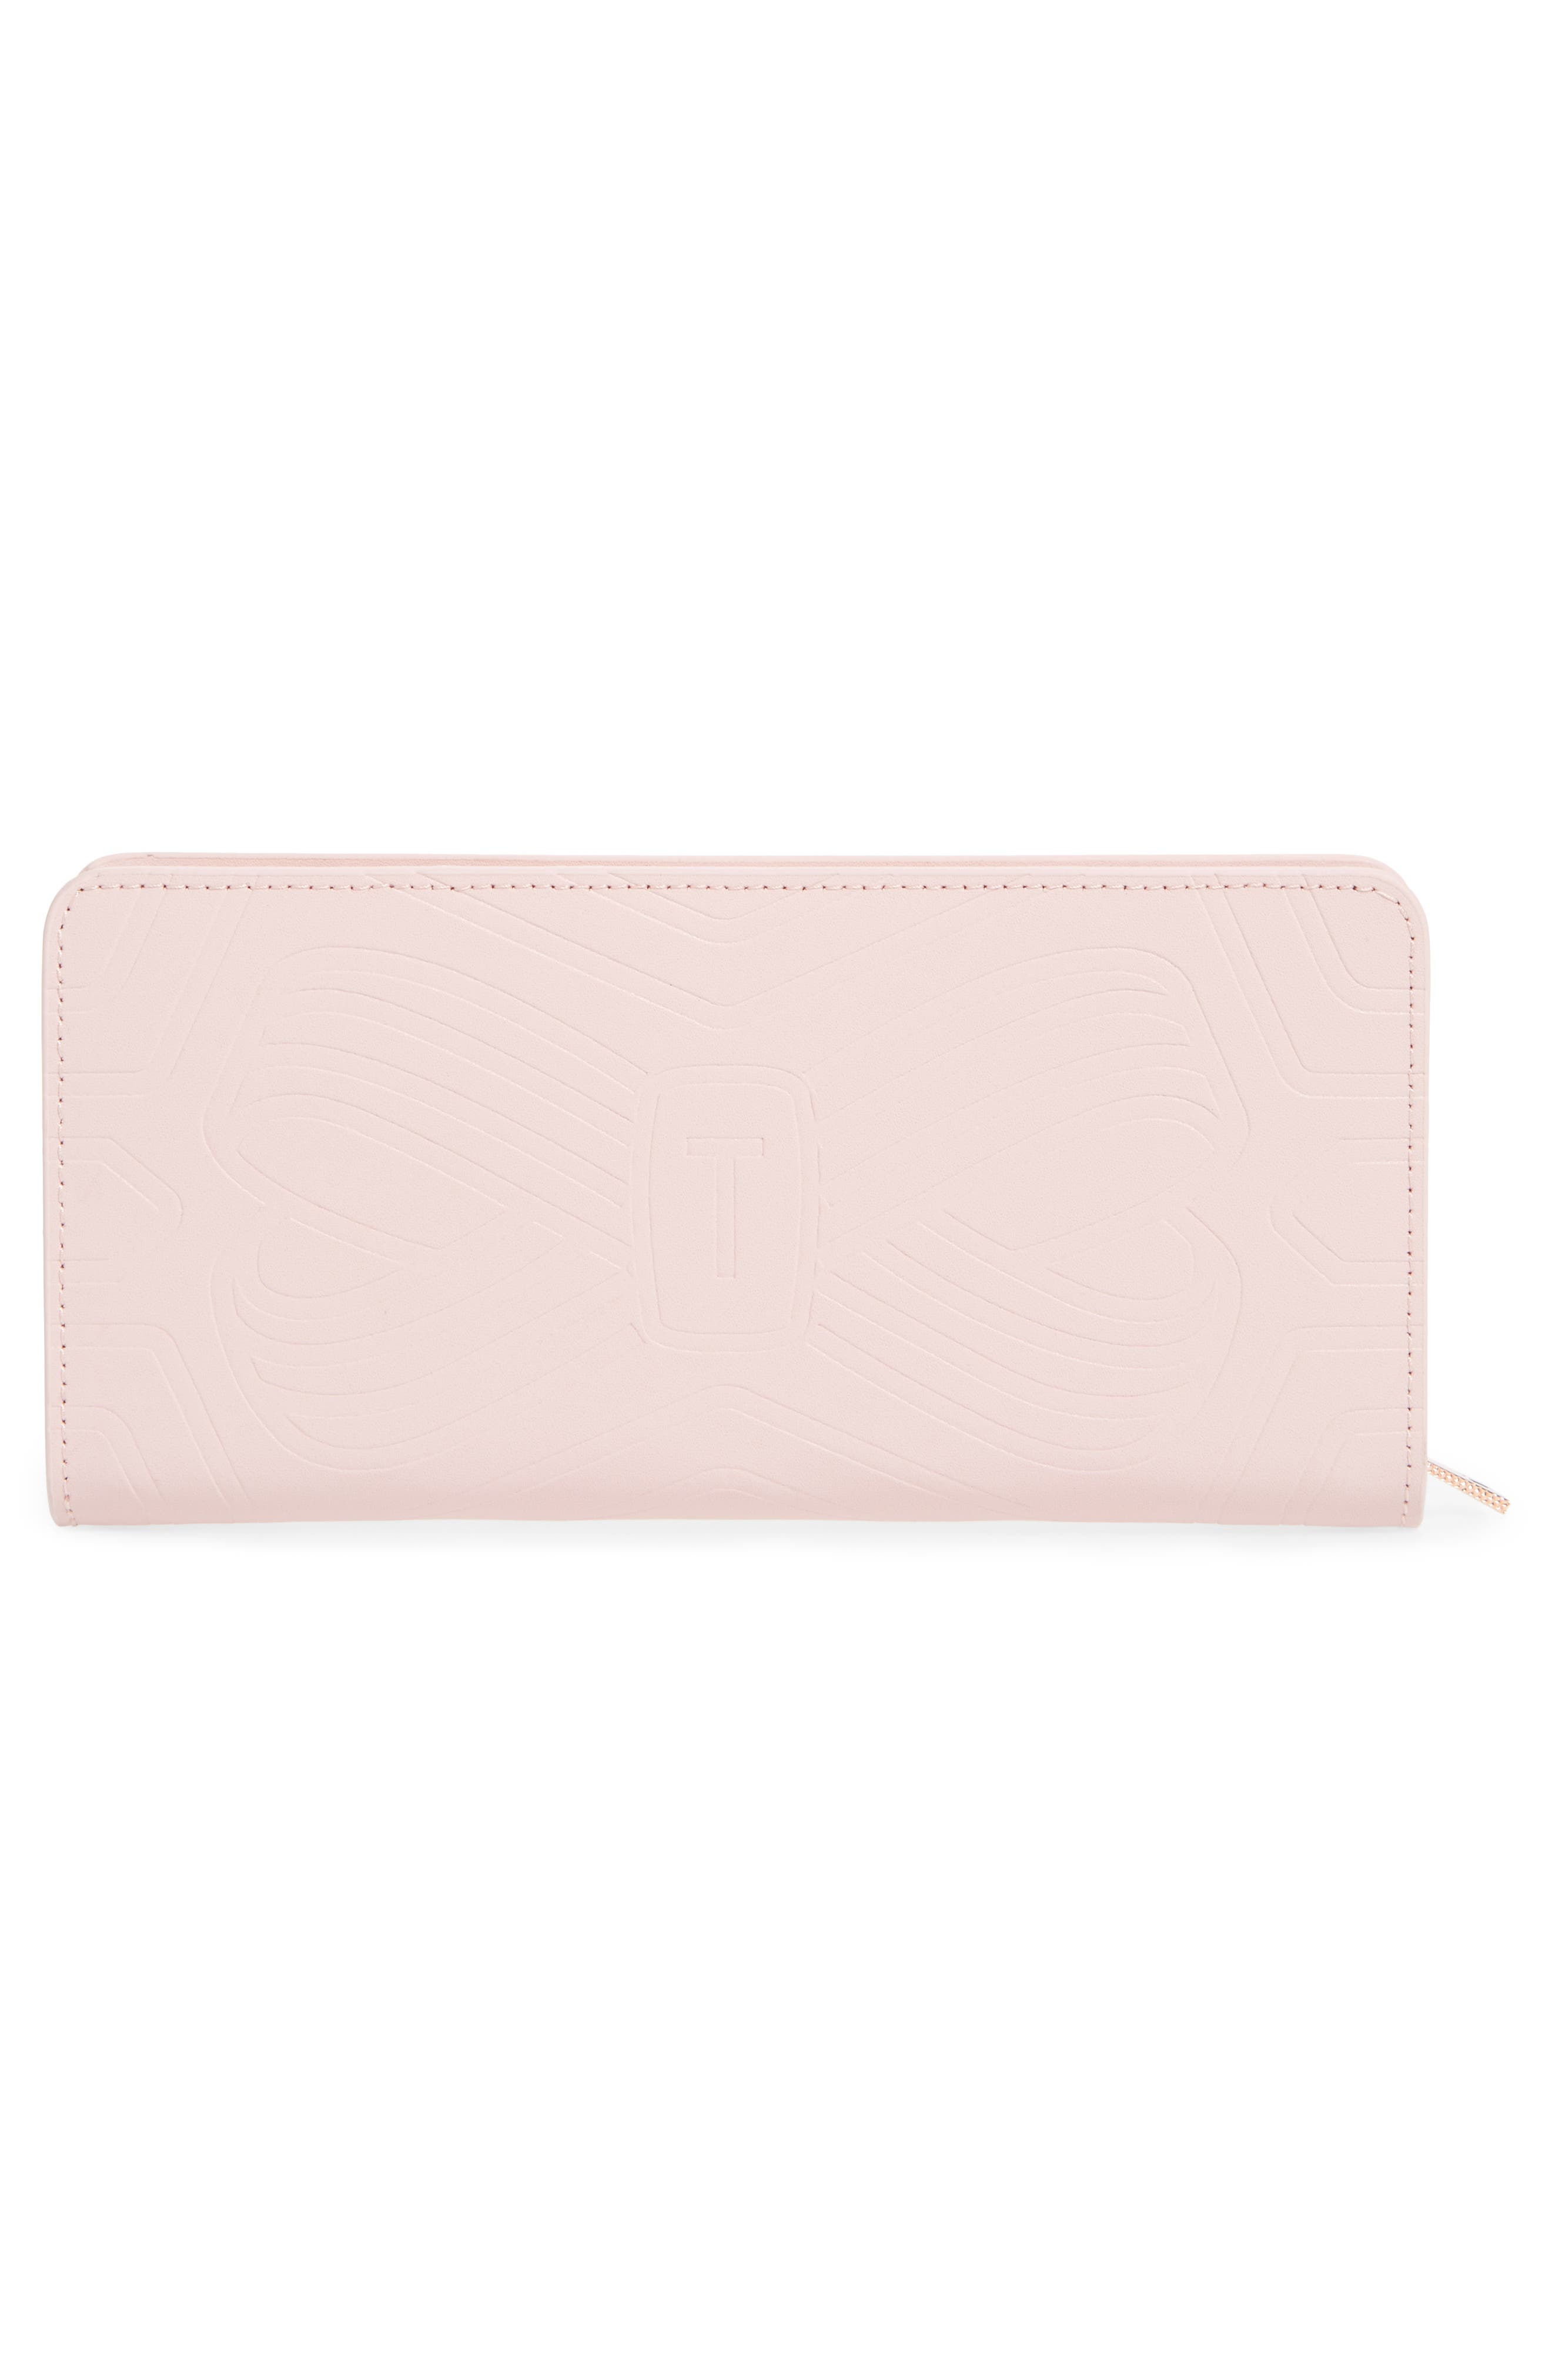 Mellvna Embossed Bow Leather Matinée Wallet,                             Alternate thumbnail 3, color,                             Light Pink